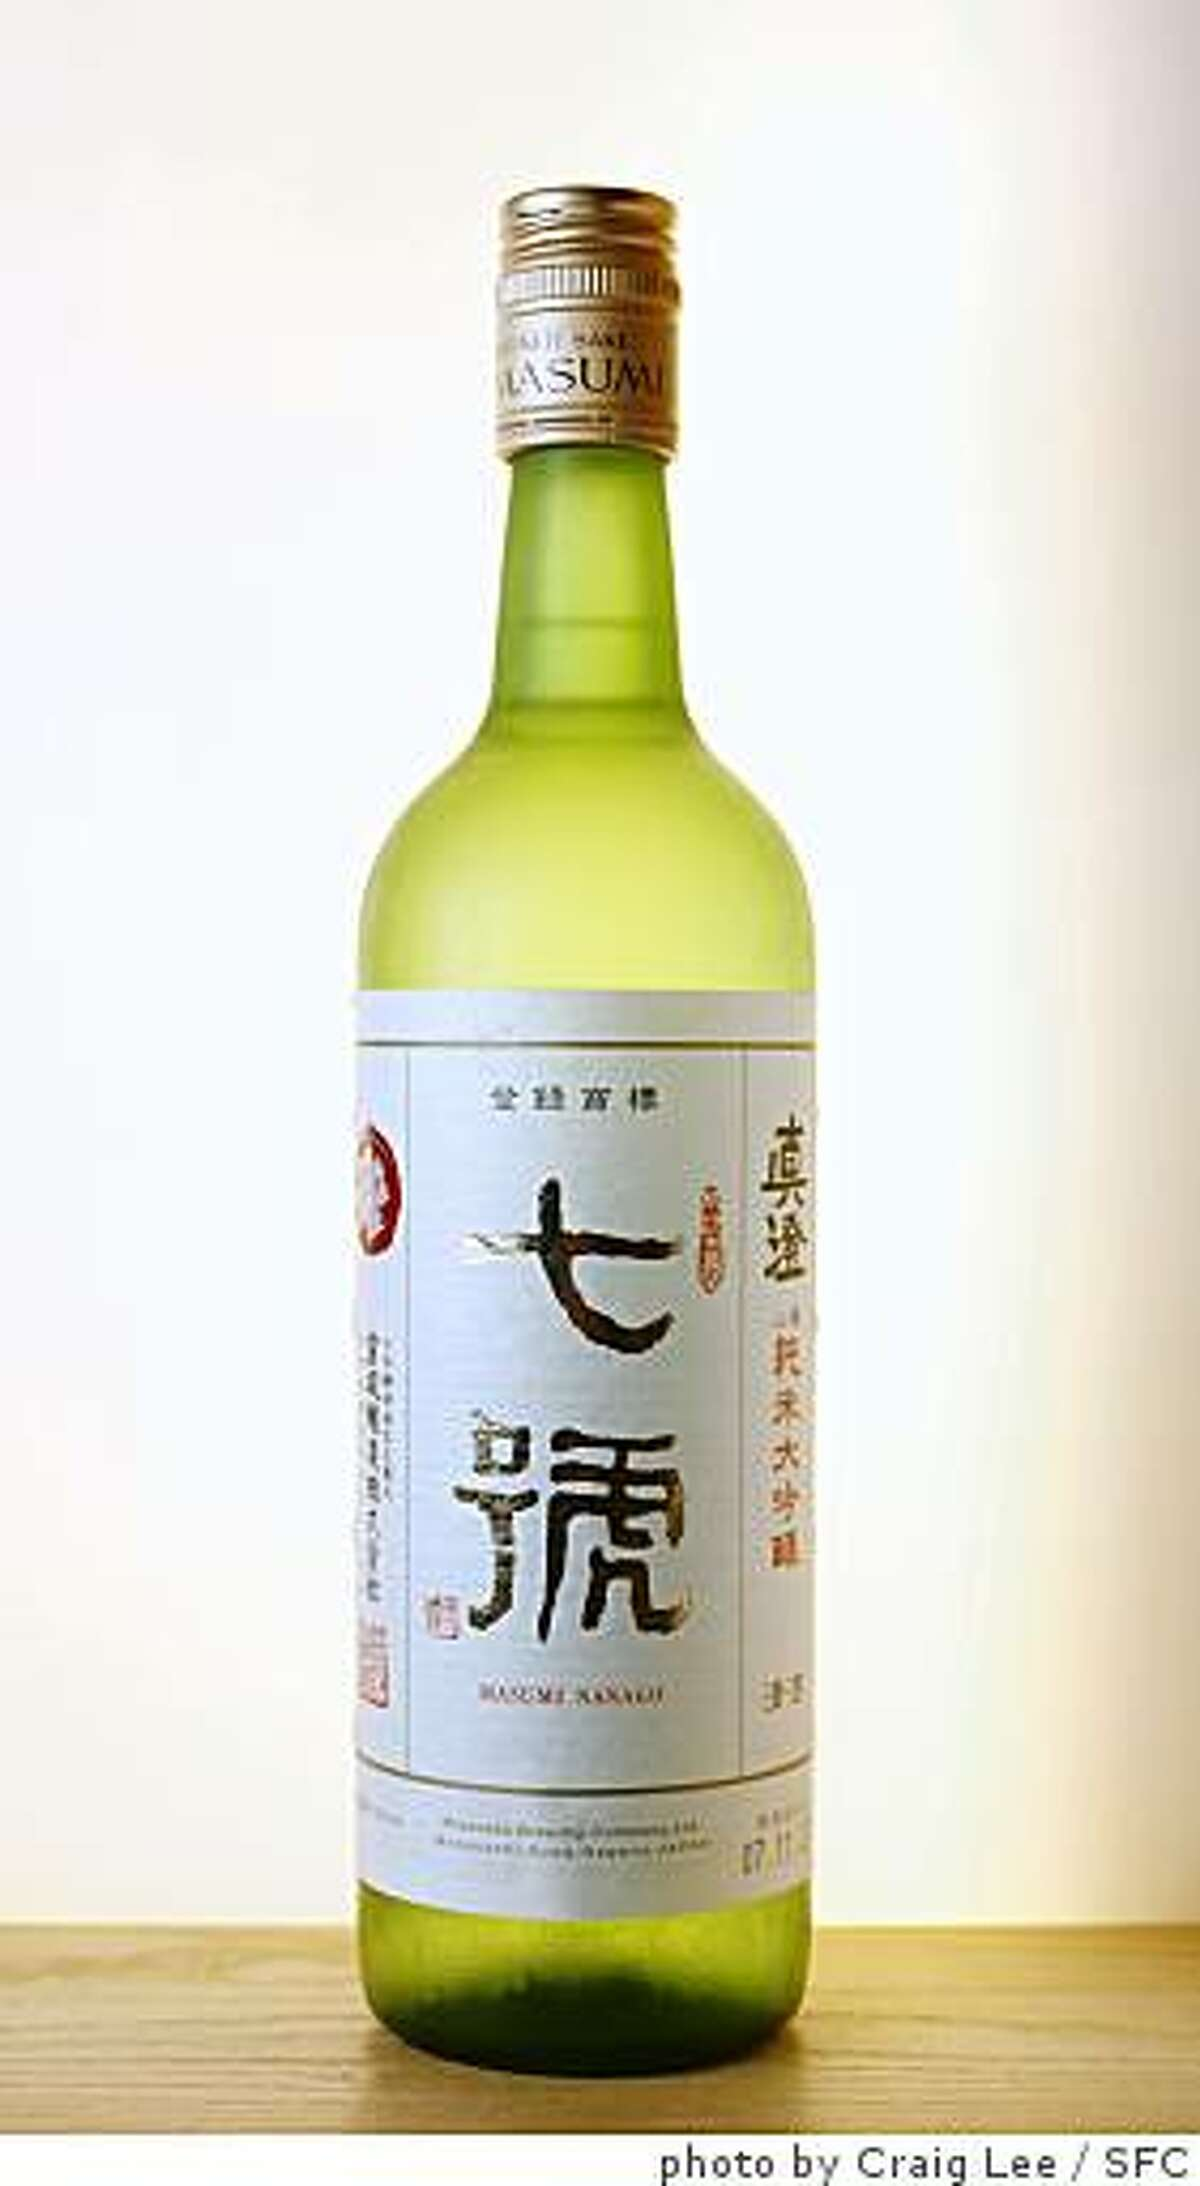 Sake bottle. Photo of Masumi Nanago Yamahai Junmai Daiginjo.photo by Craig Lee / The Chronicle